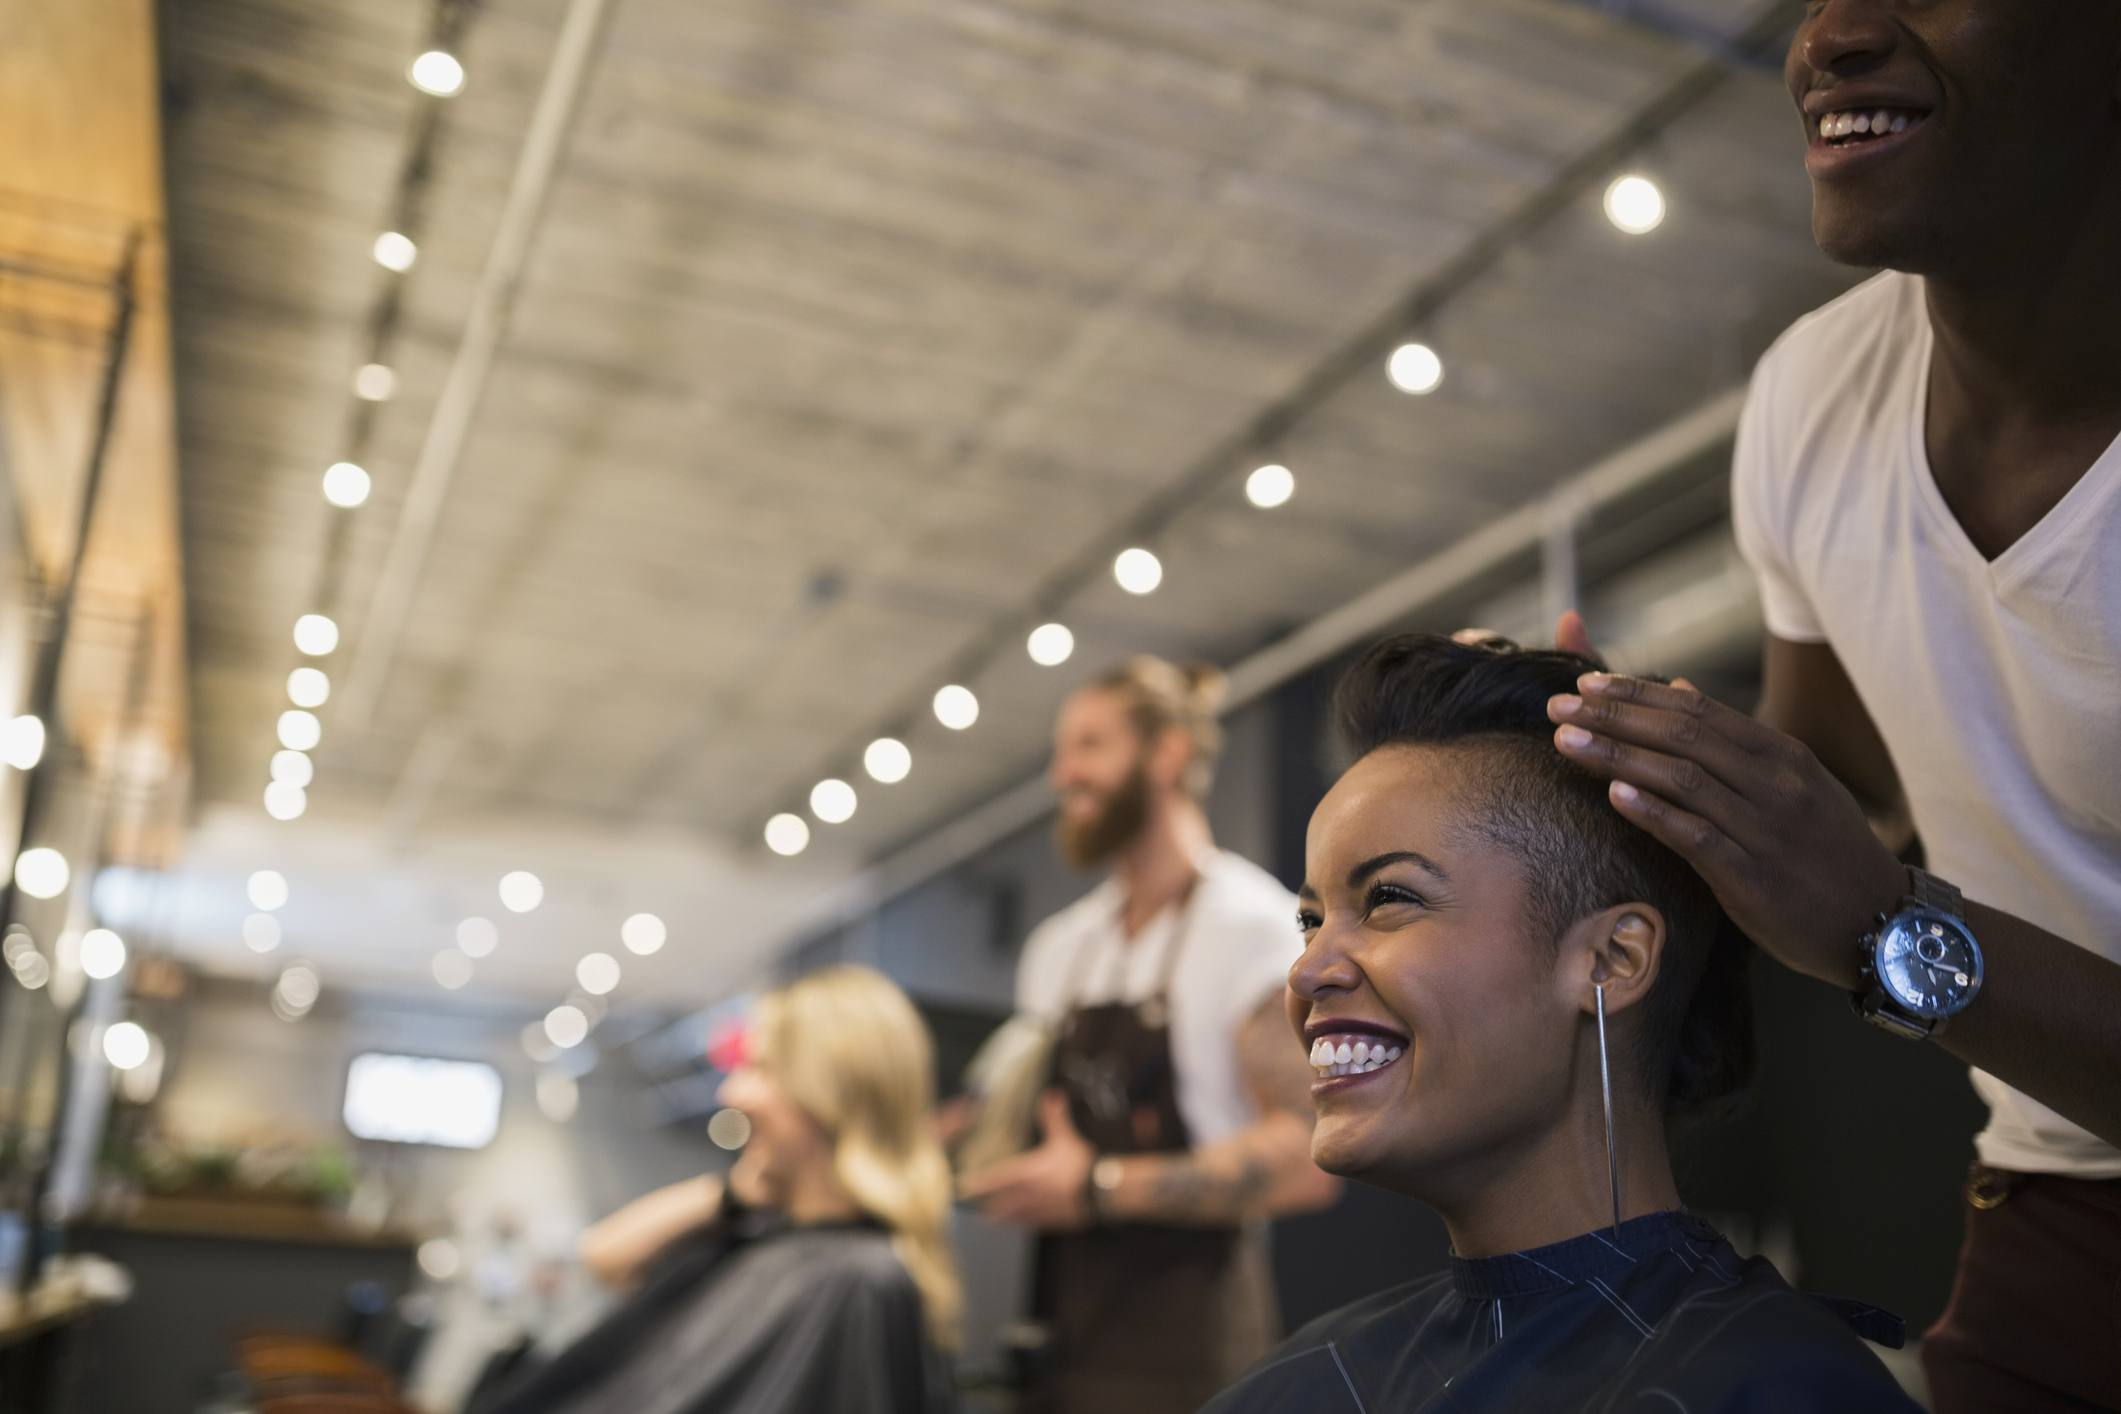 Black woman with a short mohawk smiling at her reflection in a salon mirror